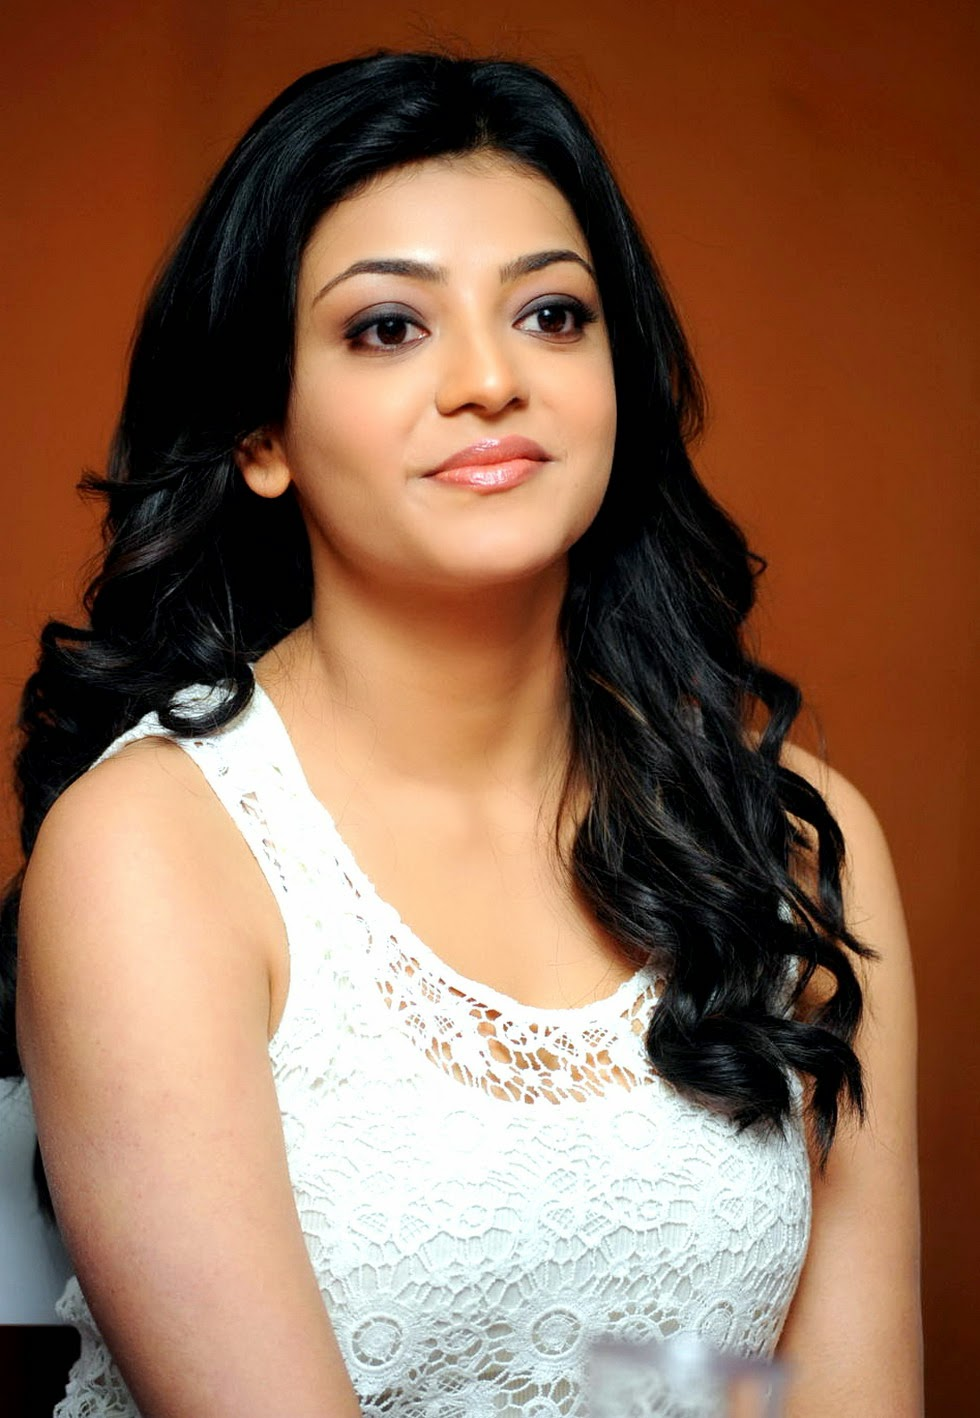 3d Snowy Cottage Animated Wallpaper Free Download Kajal Agarwal Wallpapers Free Download Image Wallpapers